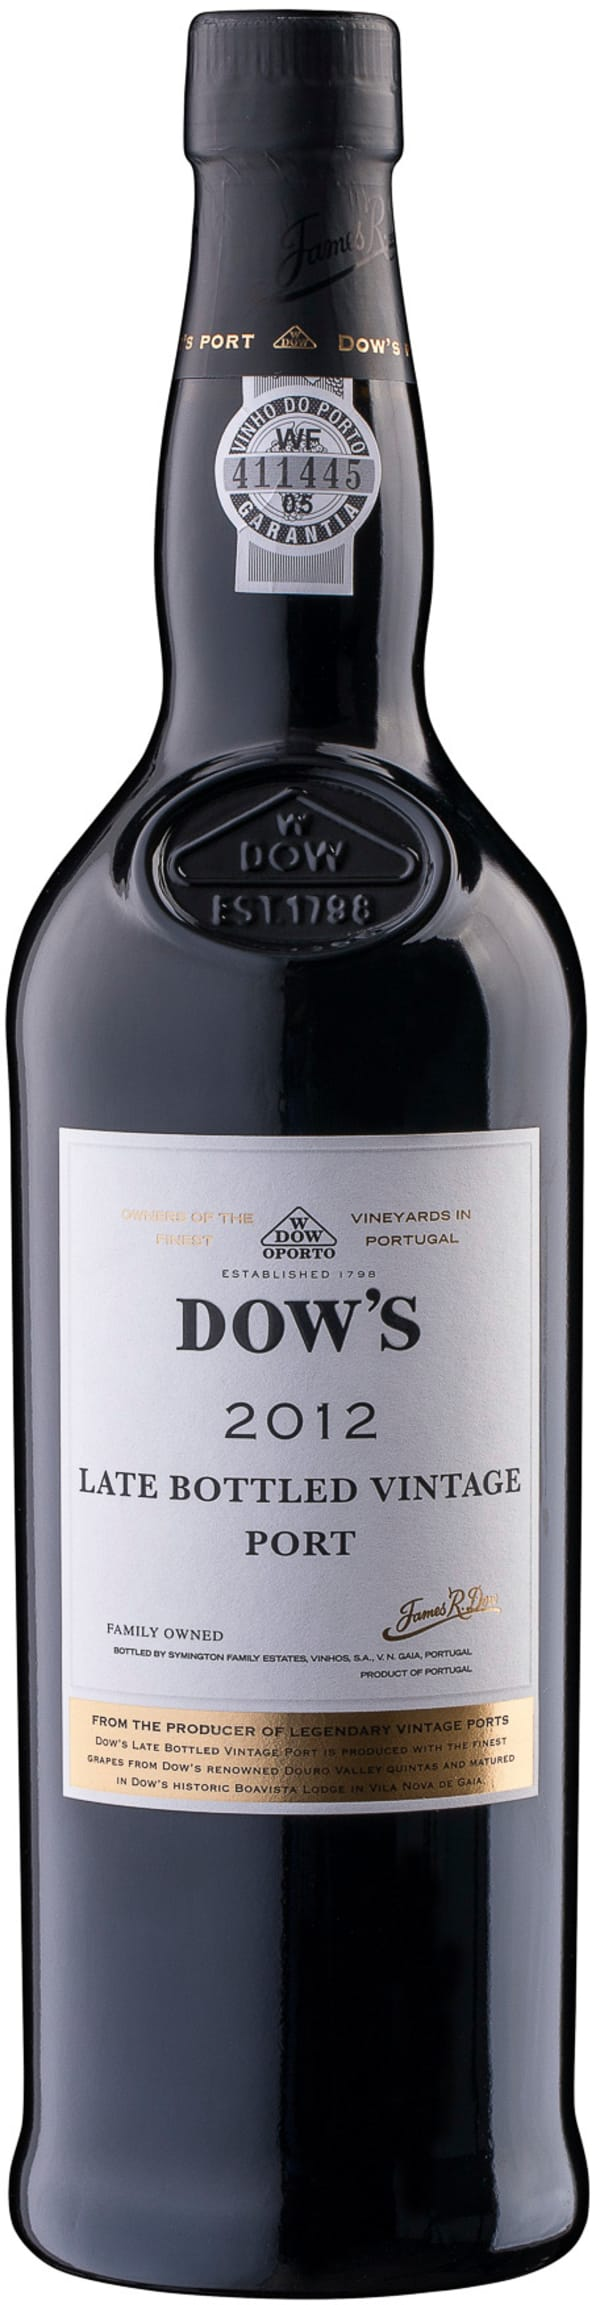 Dow's Late Bottled Vintage 2015